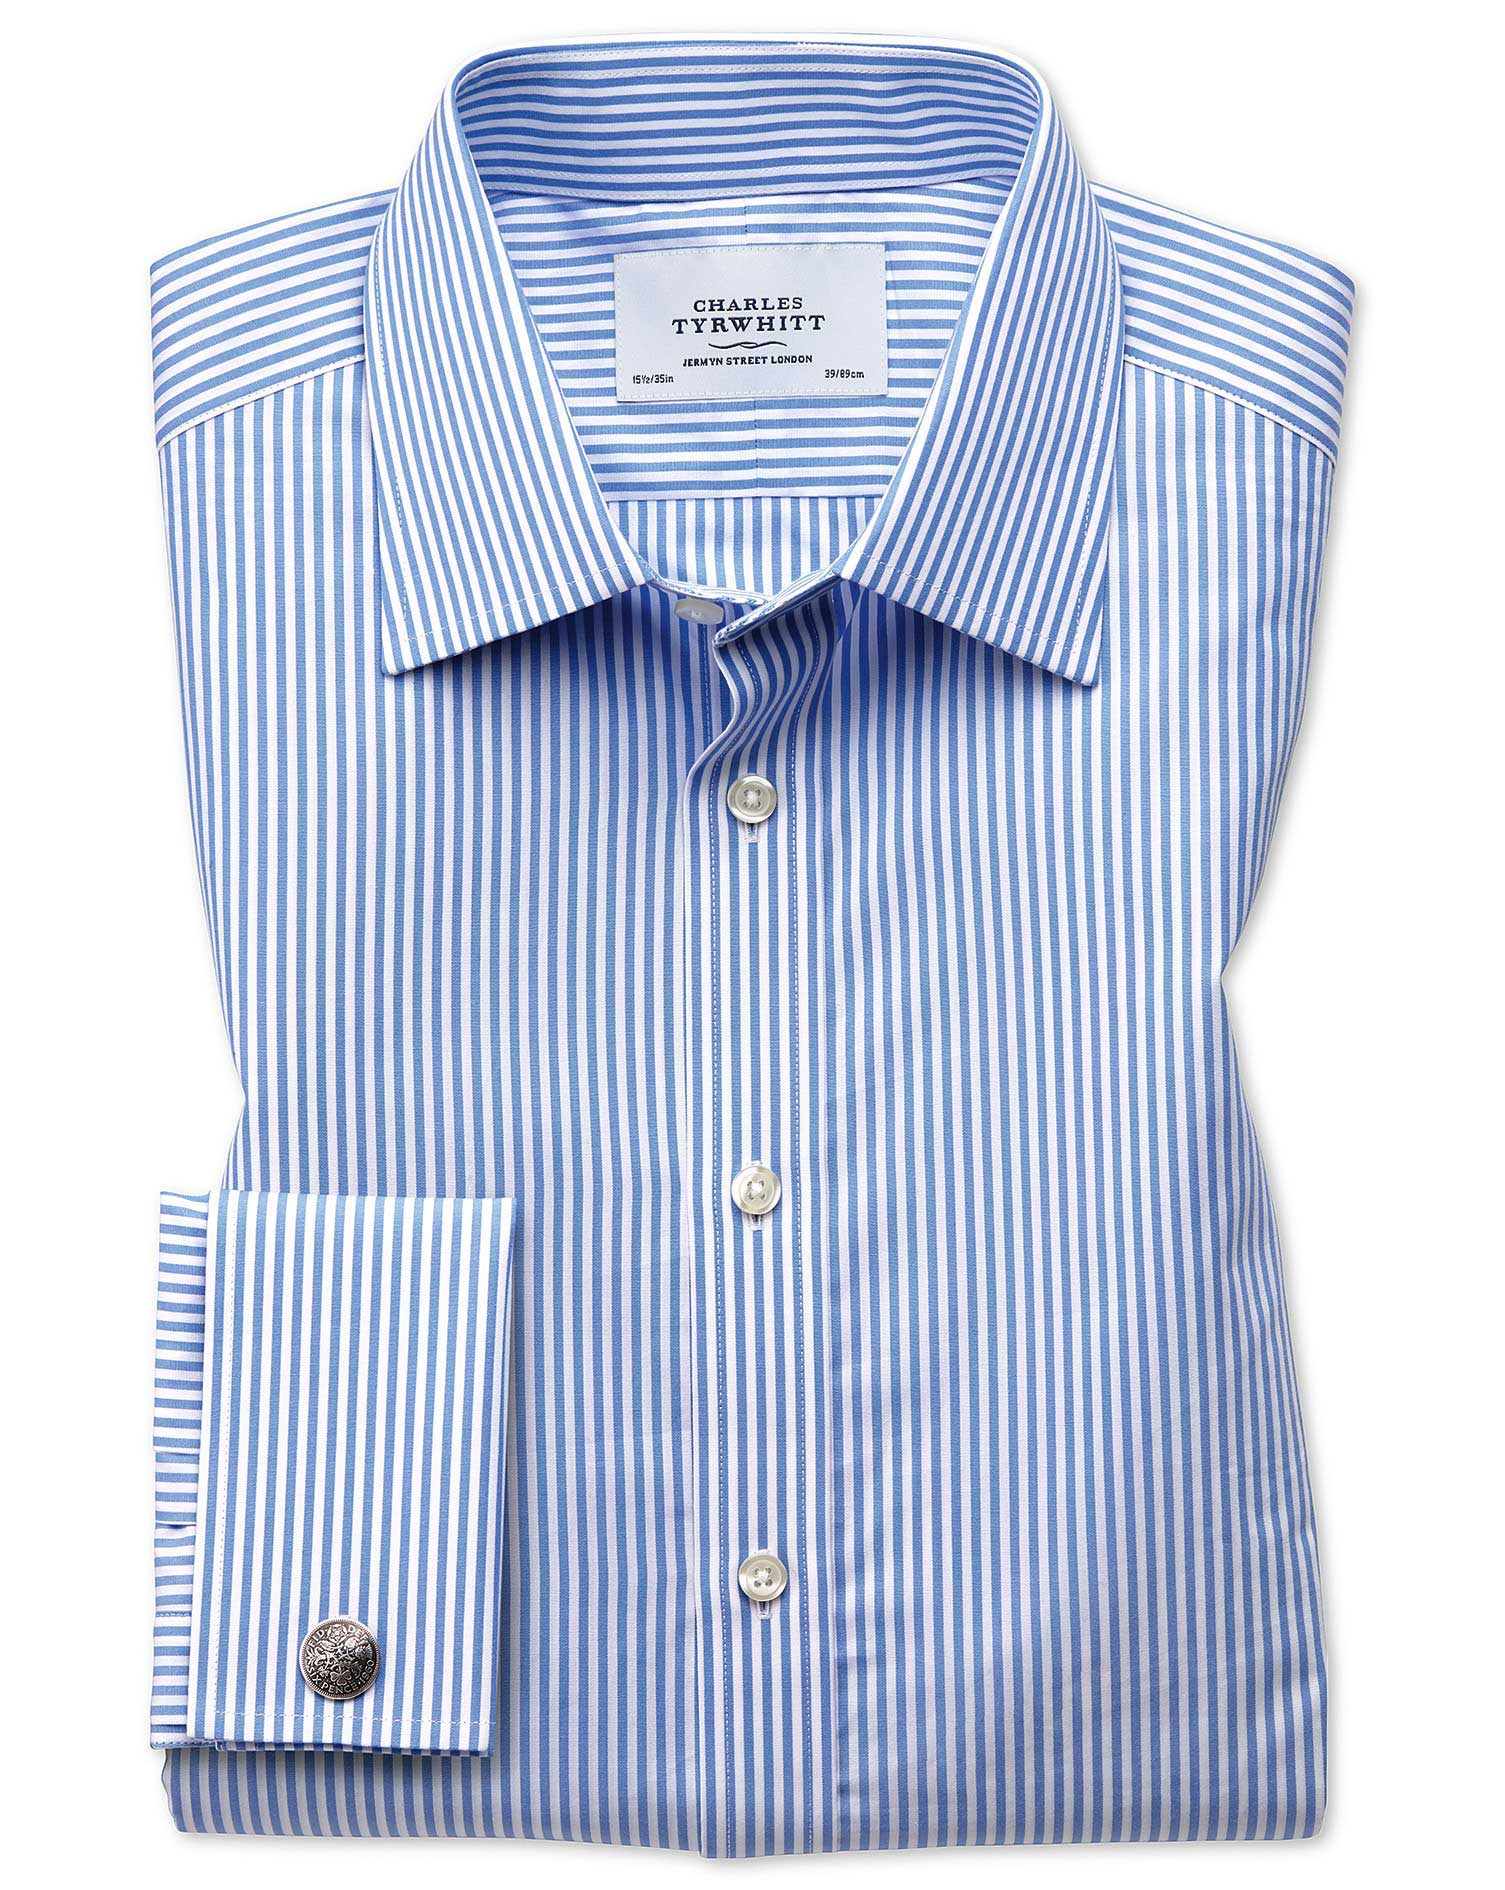 Extra Slim Fit Bengal Stripe Sky Blue Cotton Formal Shirt Double Cuff Size 14.5/33 by Charles Tyrwhi